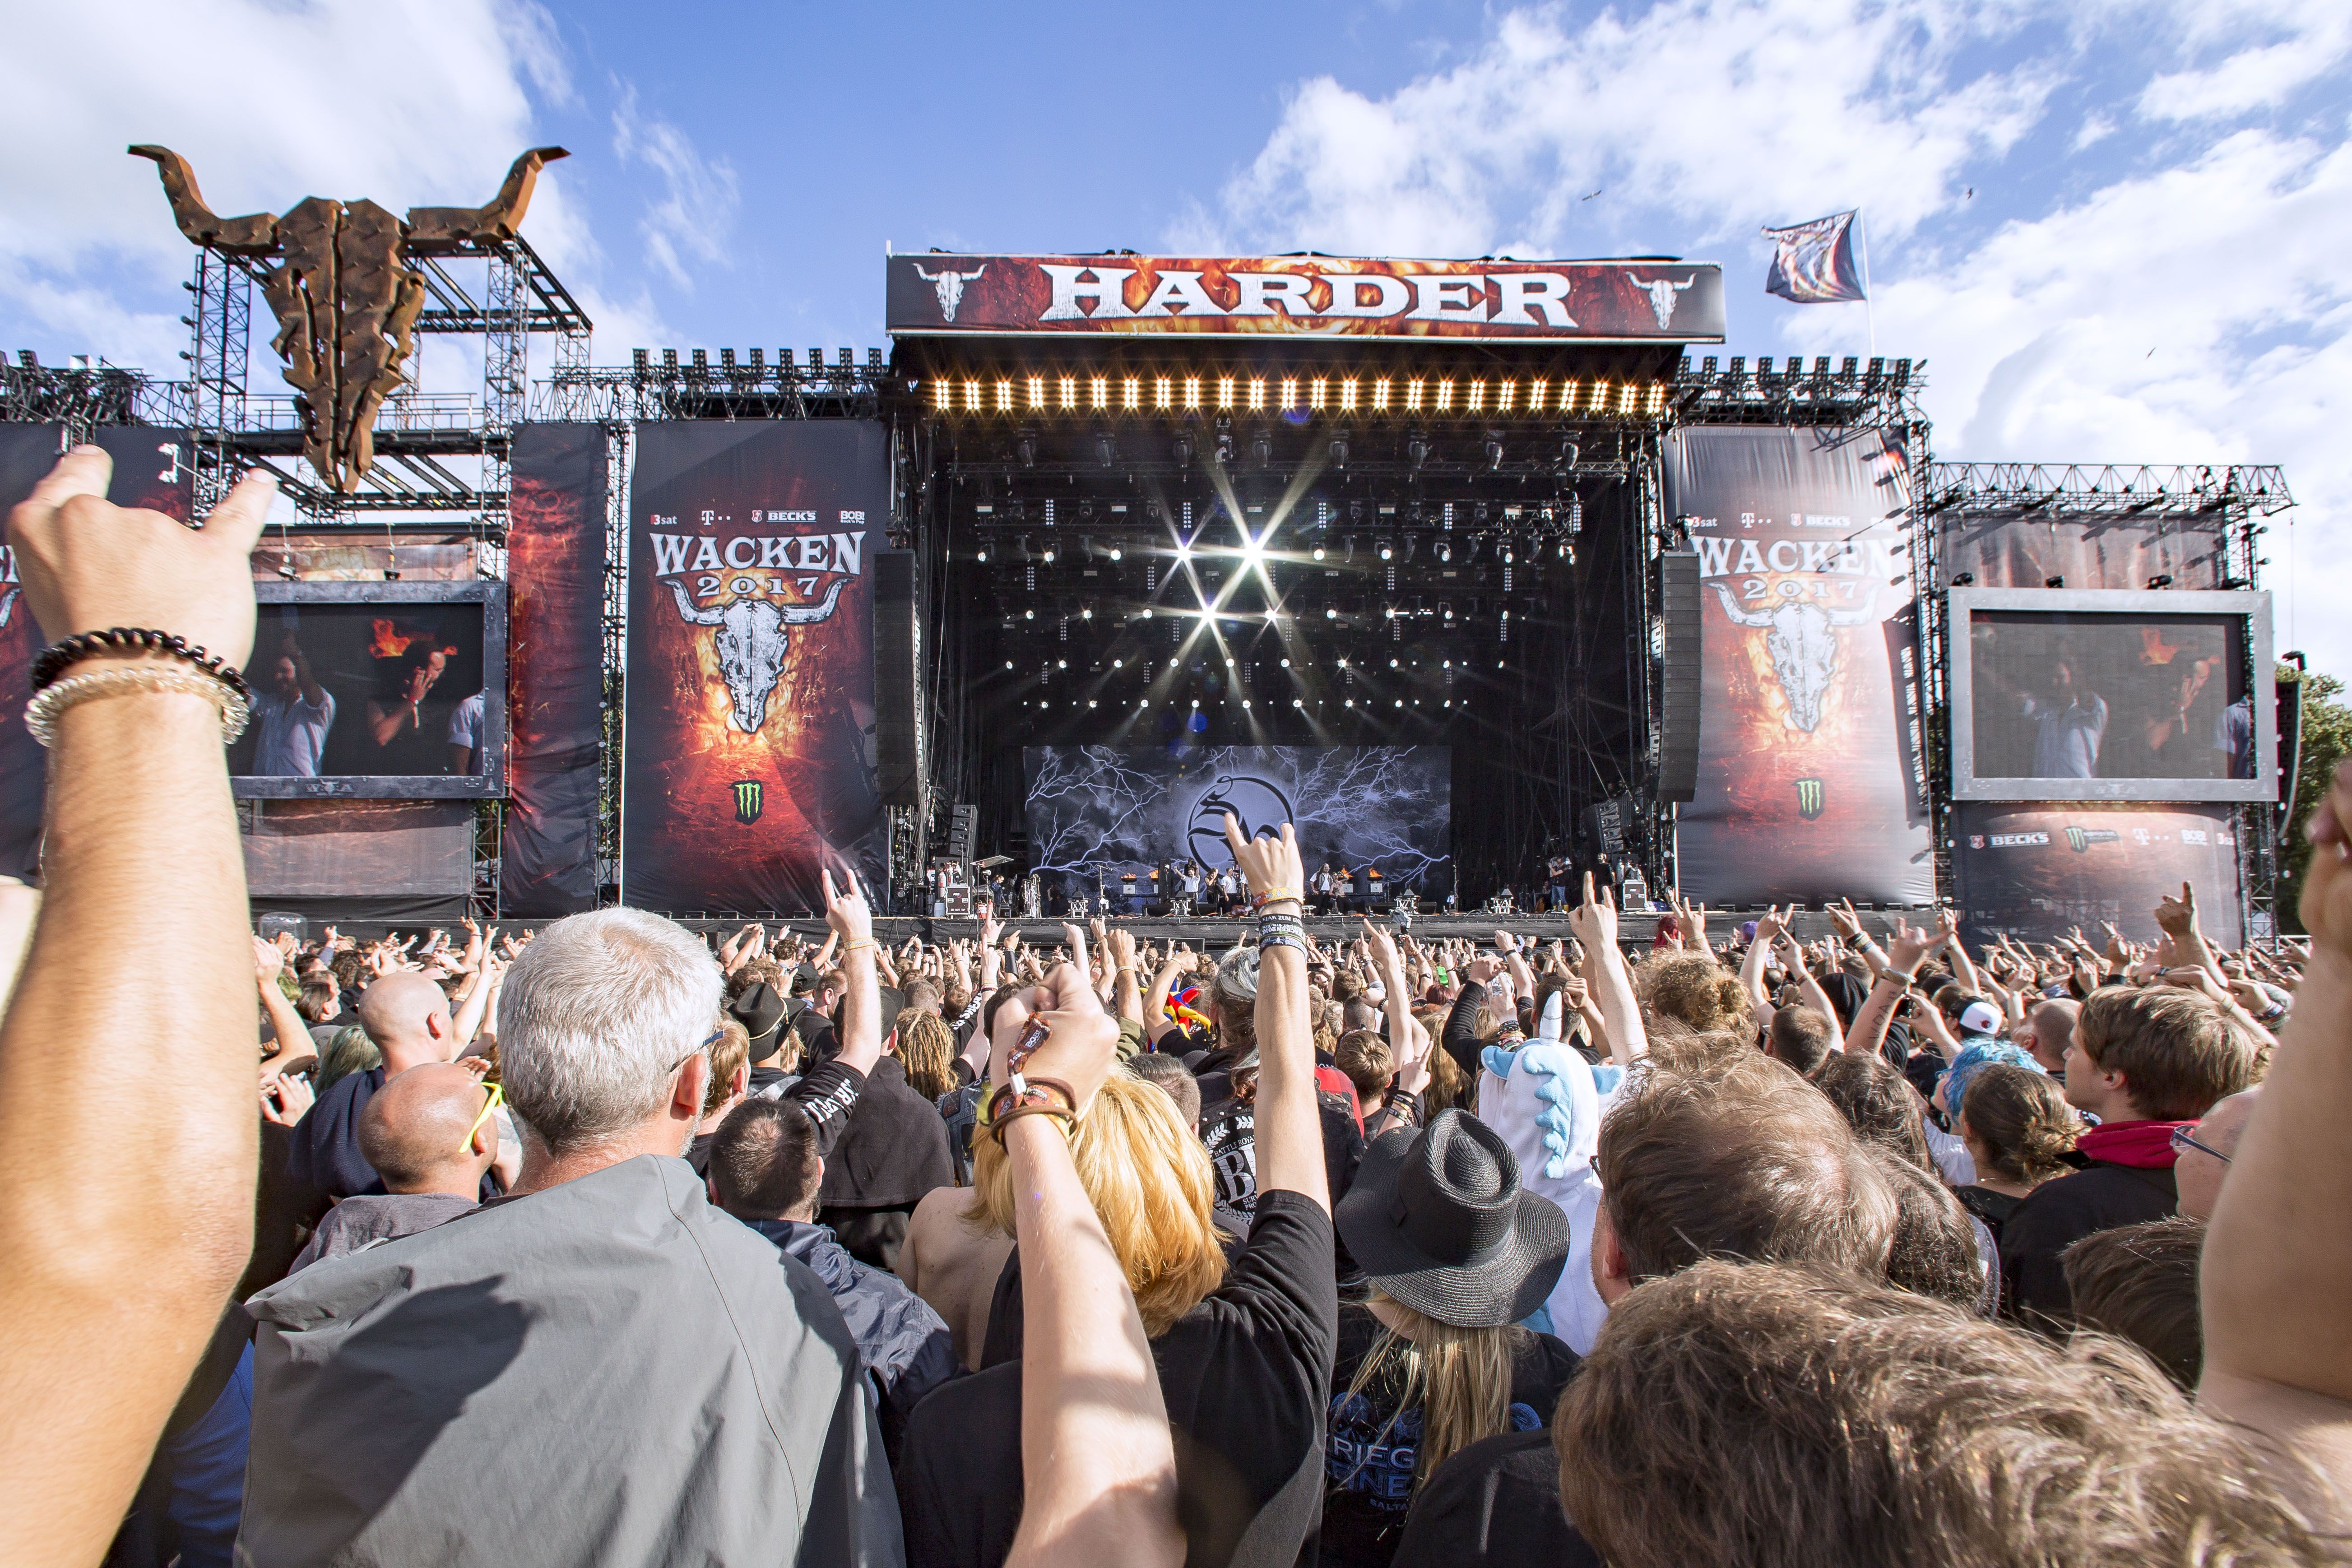 75.000 fans celebrated the worlds largest heavy metal